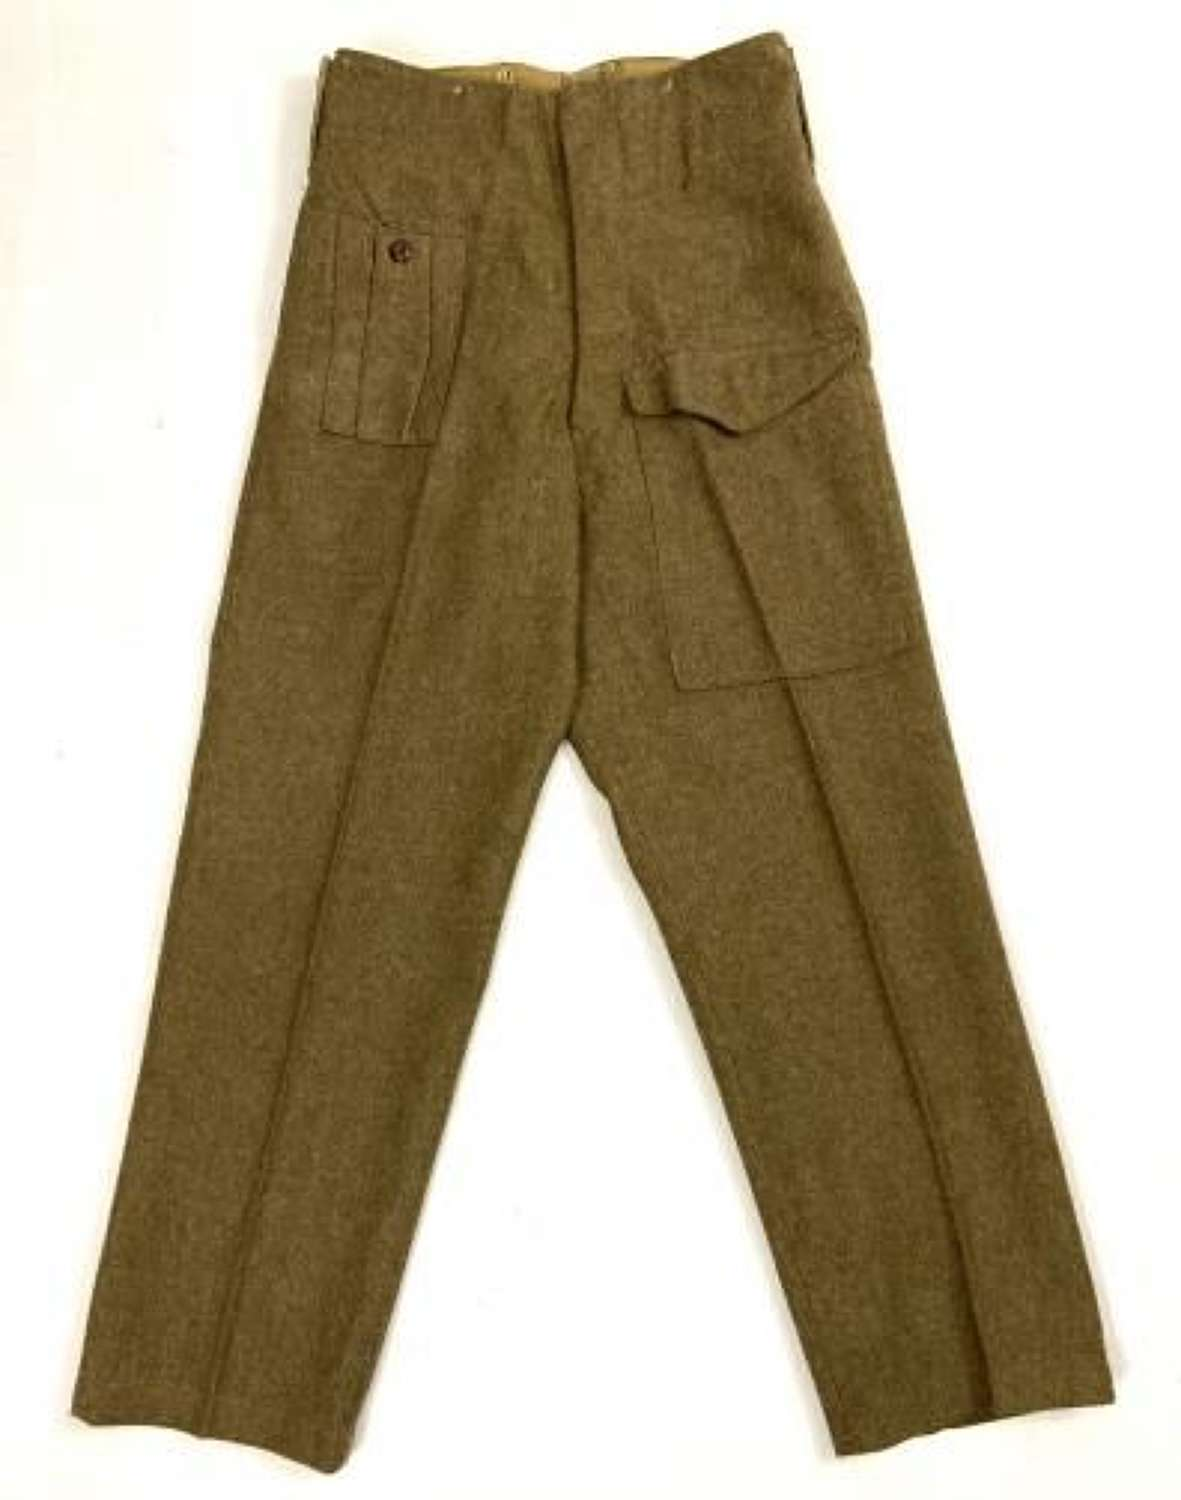 Original 1942 Dated 1940 Pattern Battledress Trousers